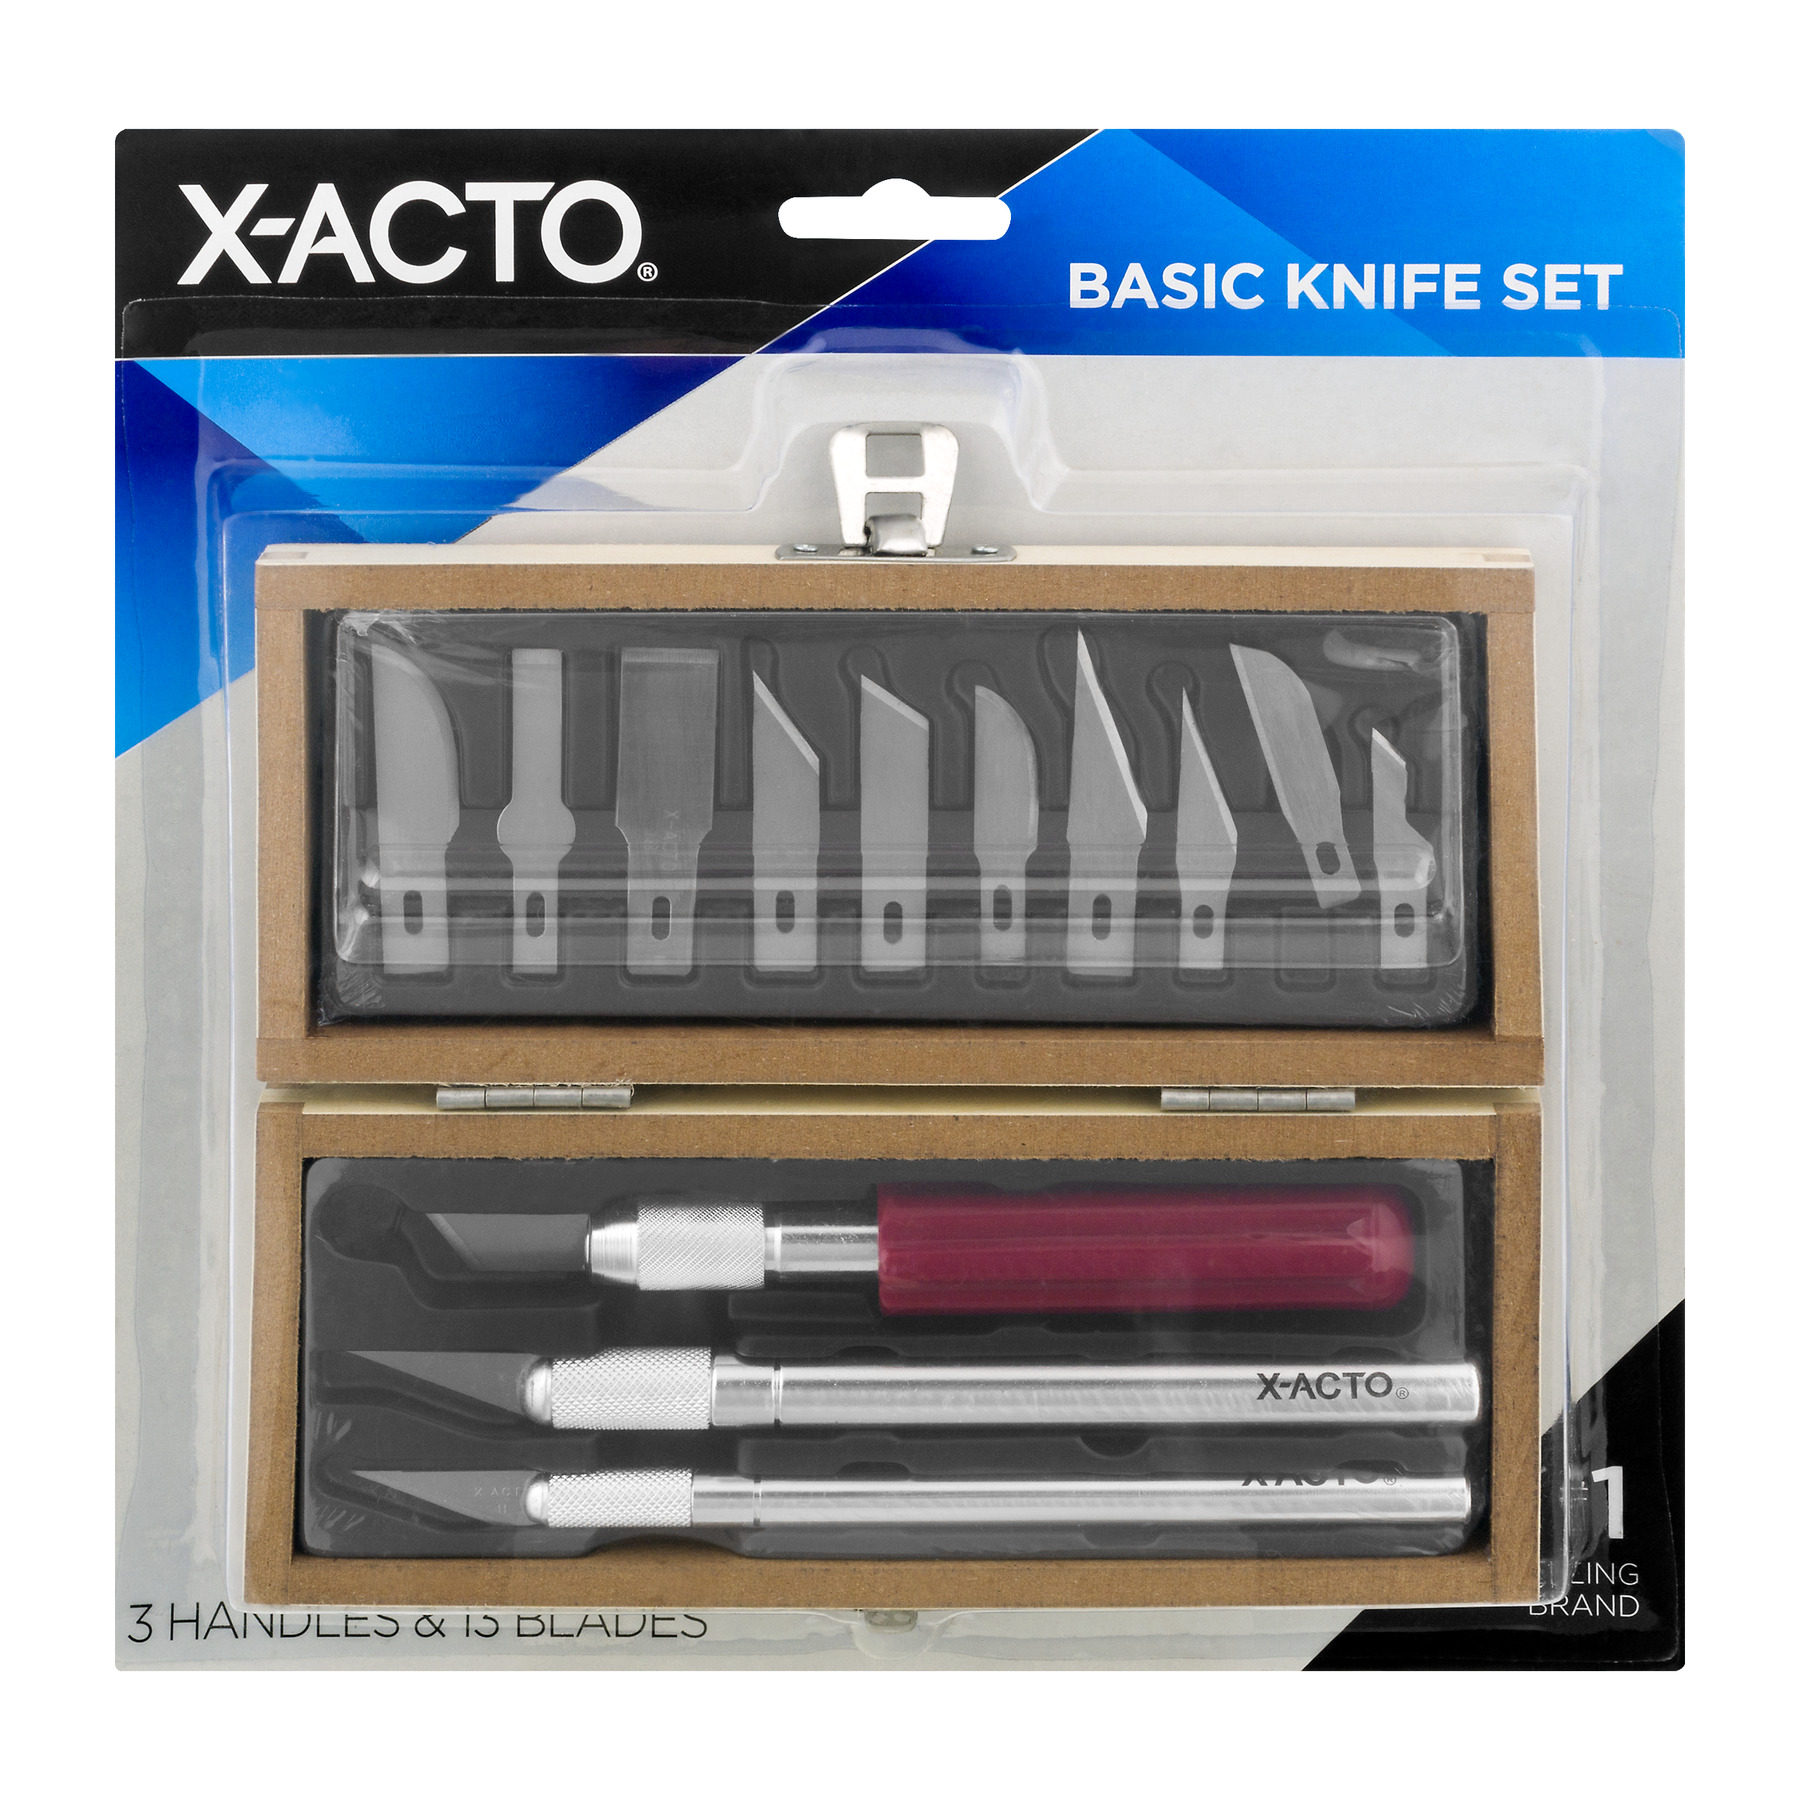 X-Acto Basic Knife Set, 1.0 CT